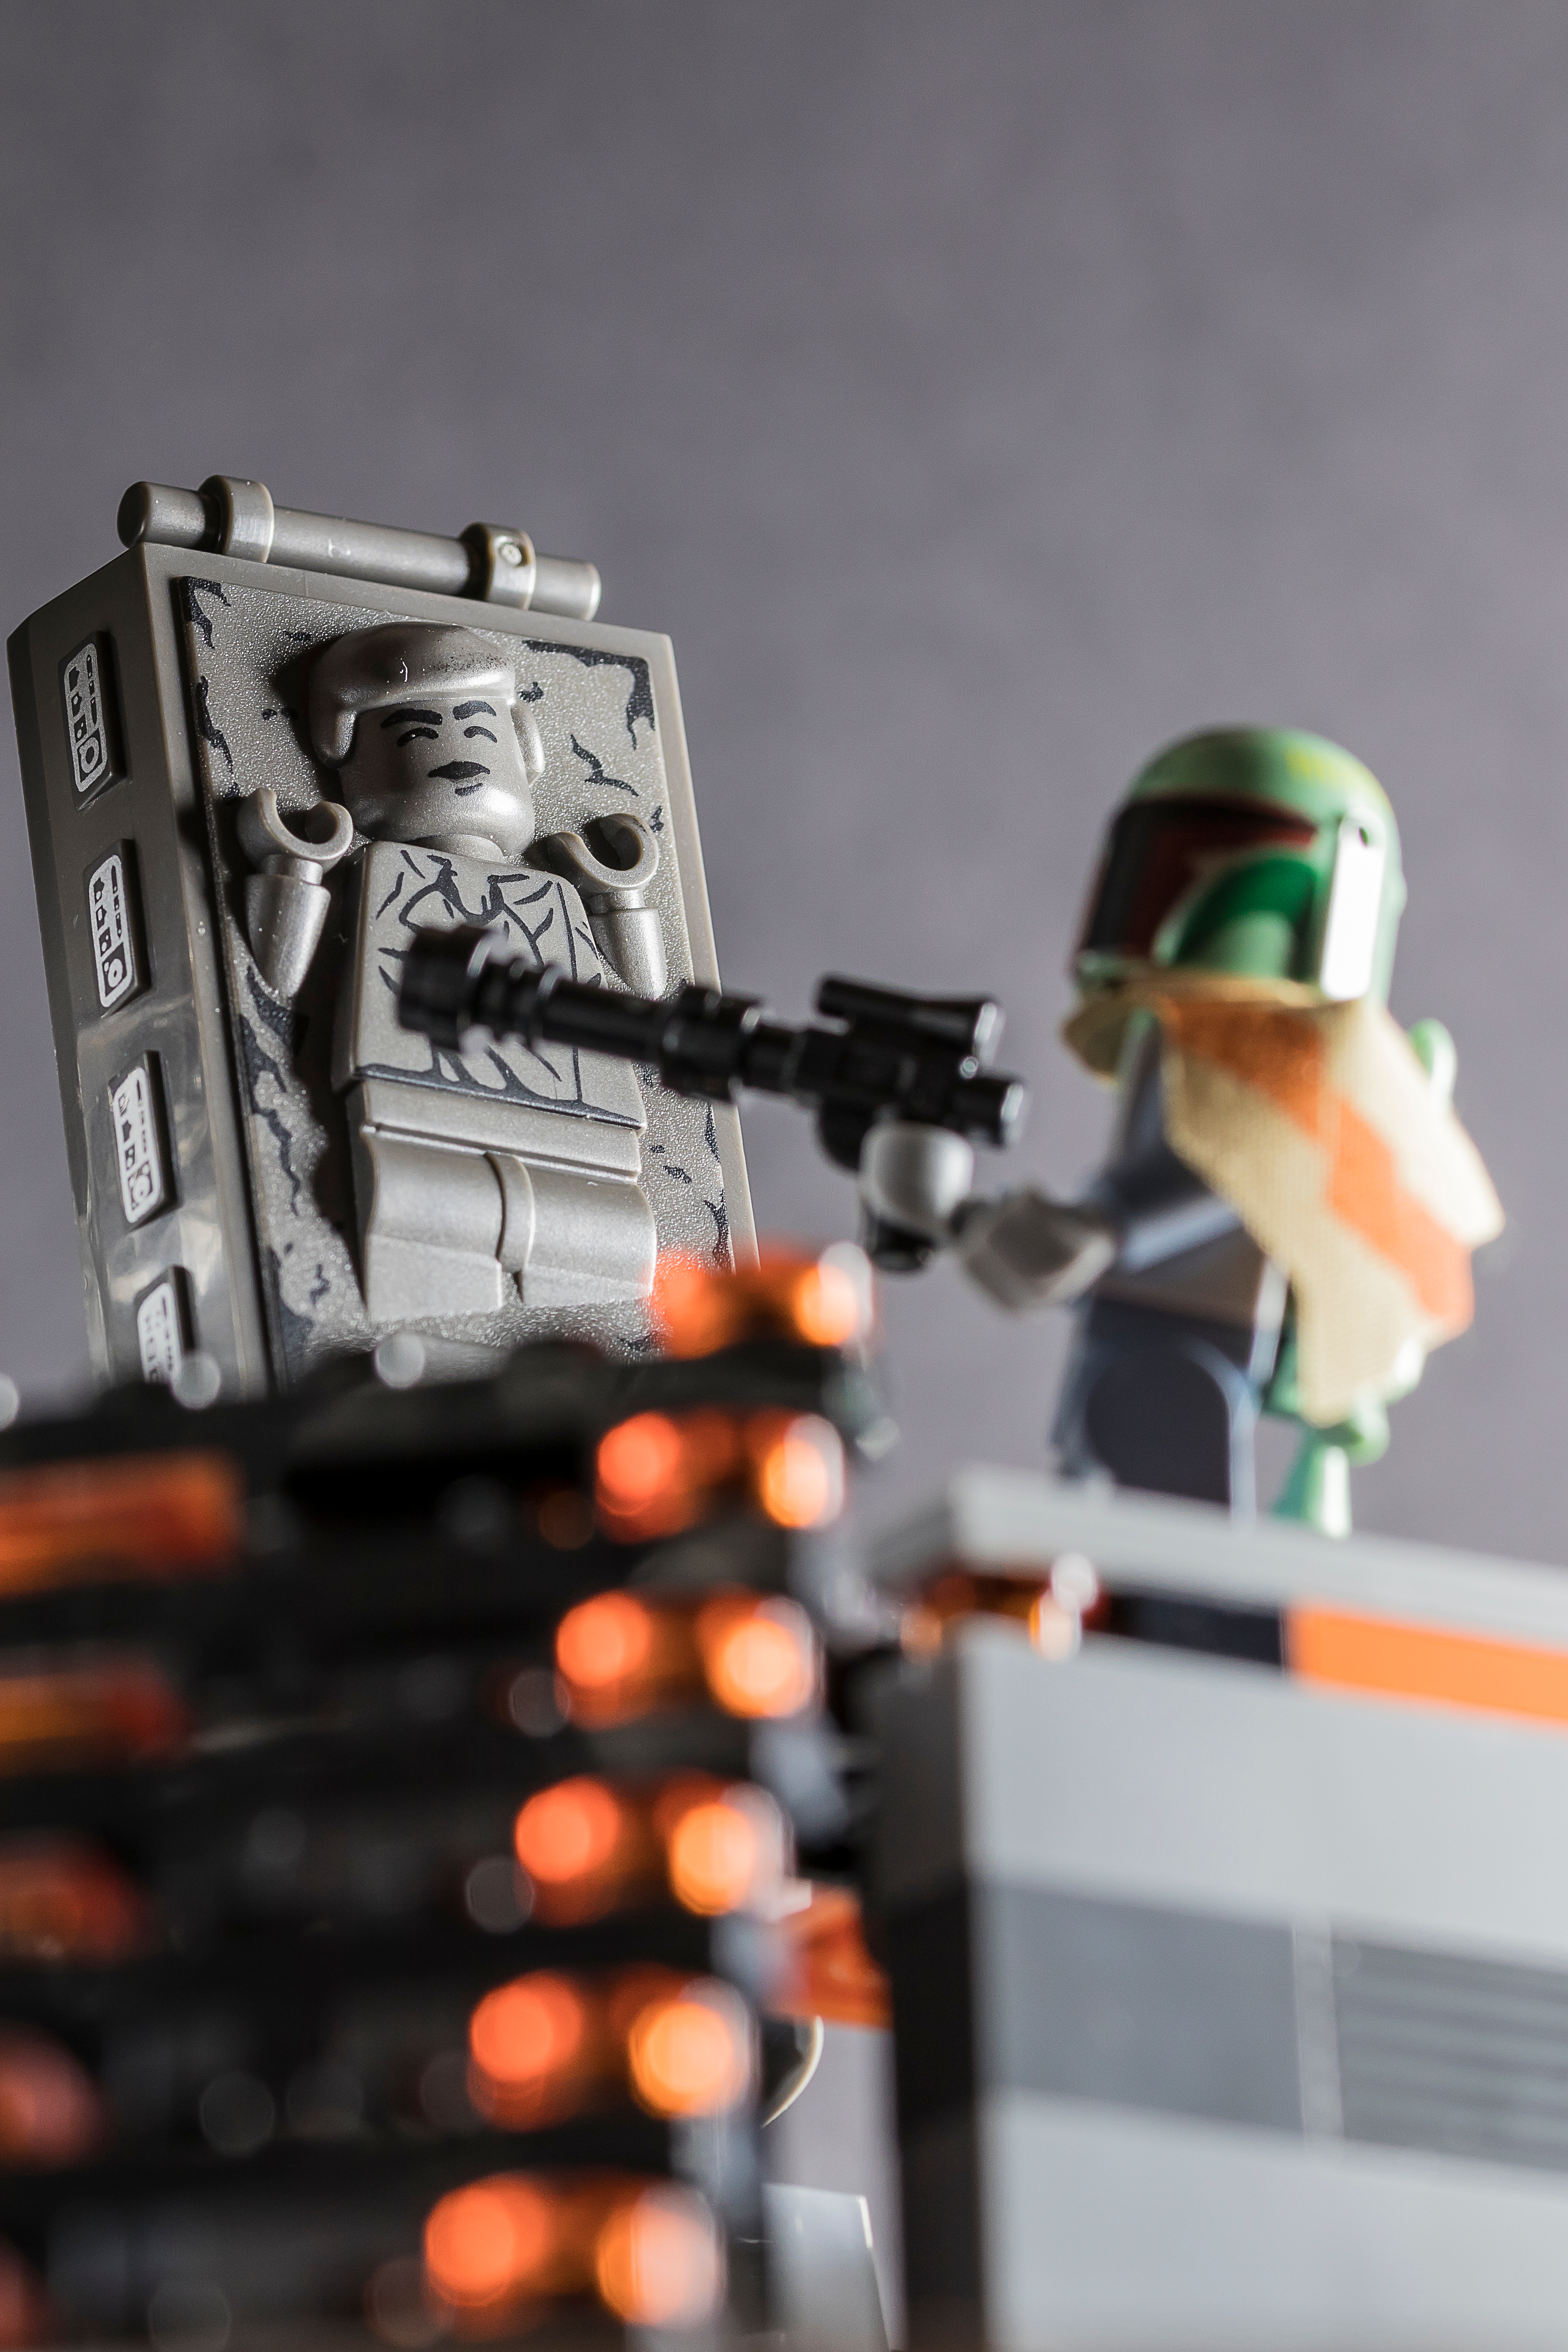 Scene of LEGO toys: Boba Fett confronting Han Solo, who is frozen in carbonite.